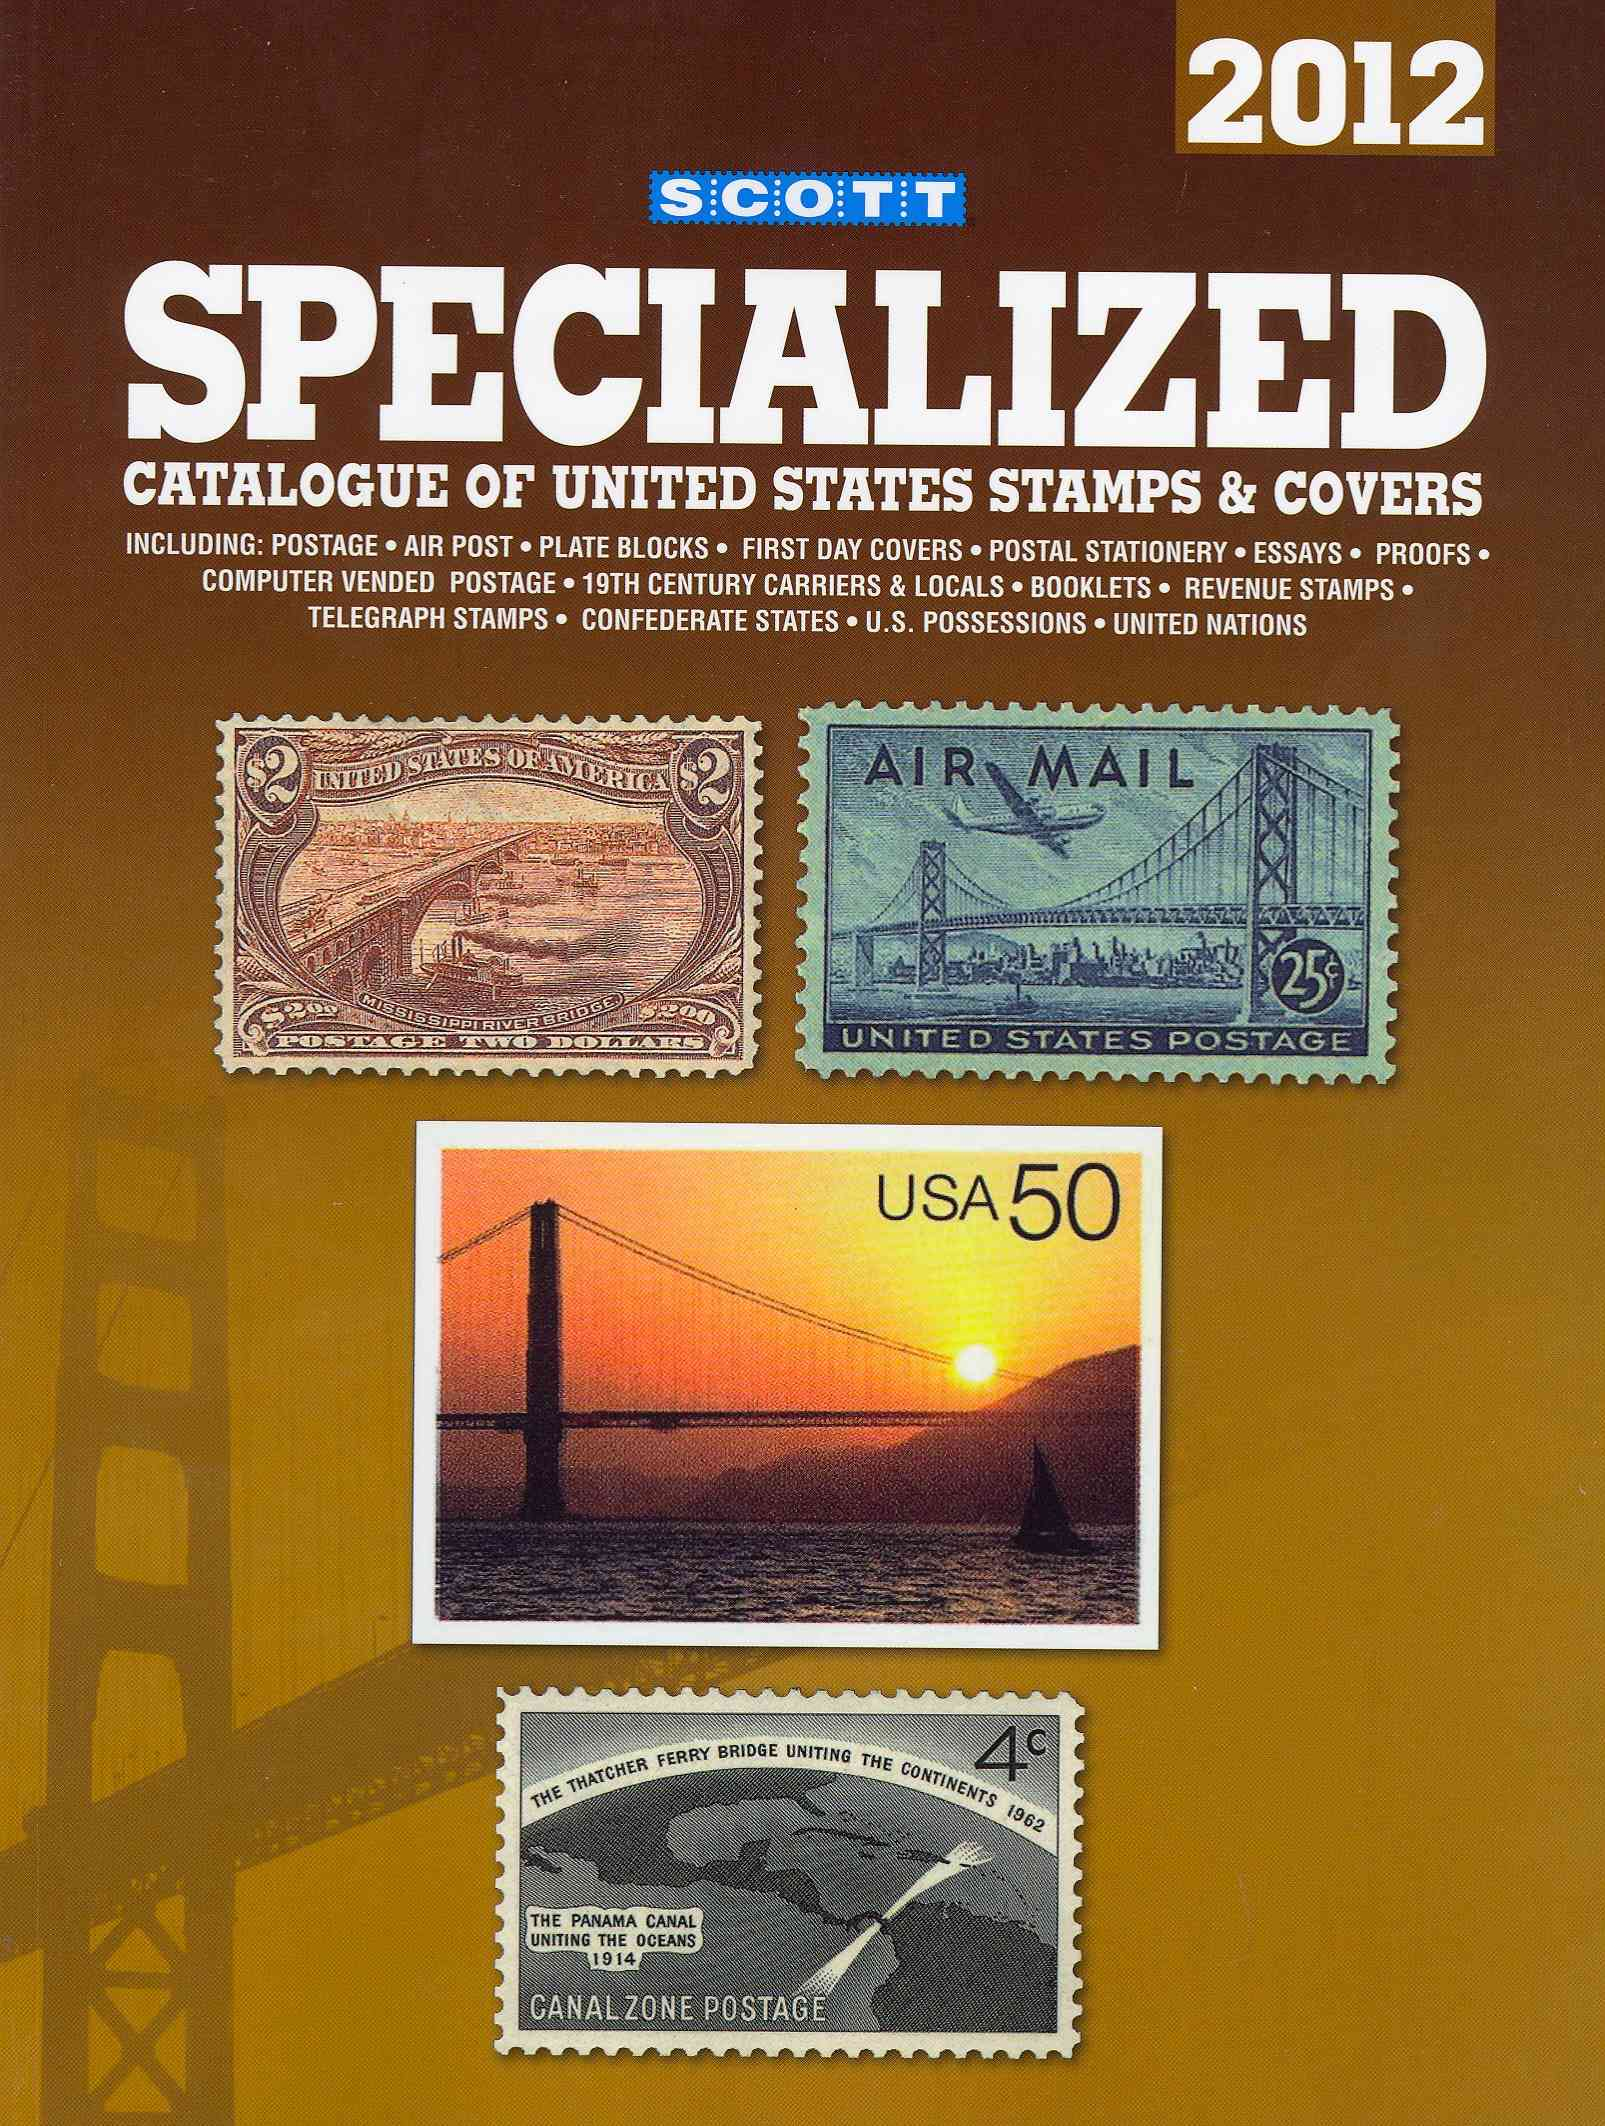 Scott Specialized Catalogue of United States Stamps & Covers 2012 (Paperback)